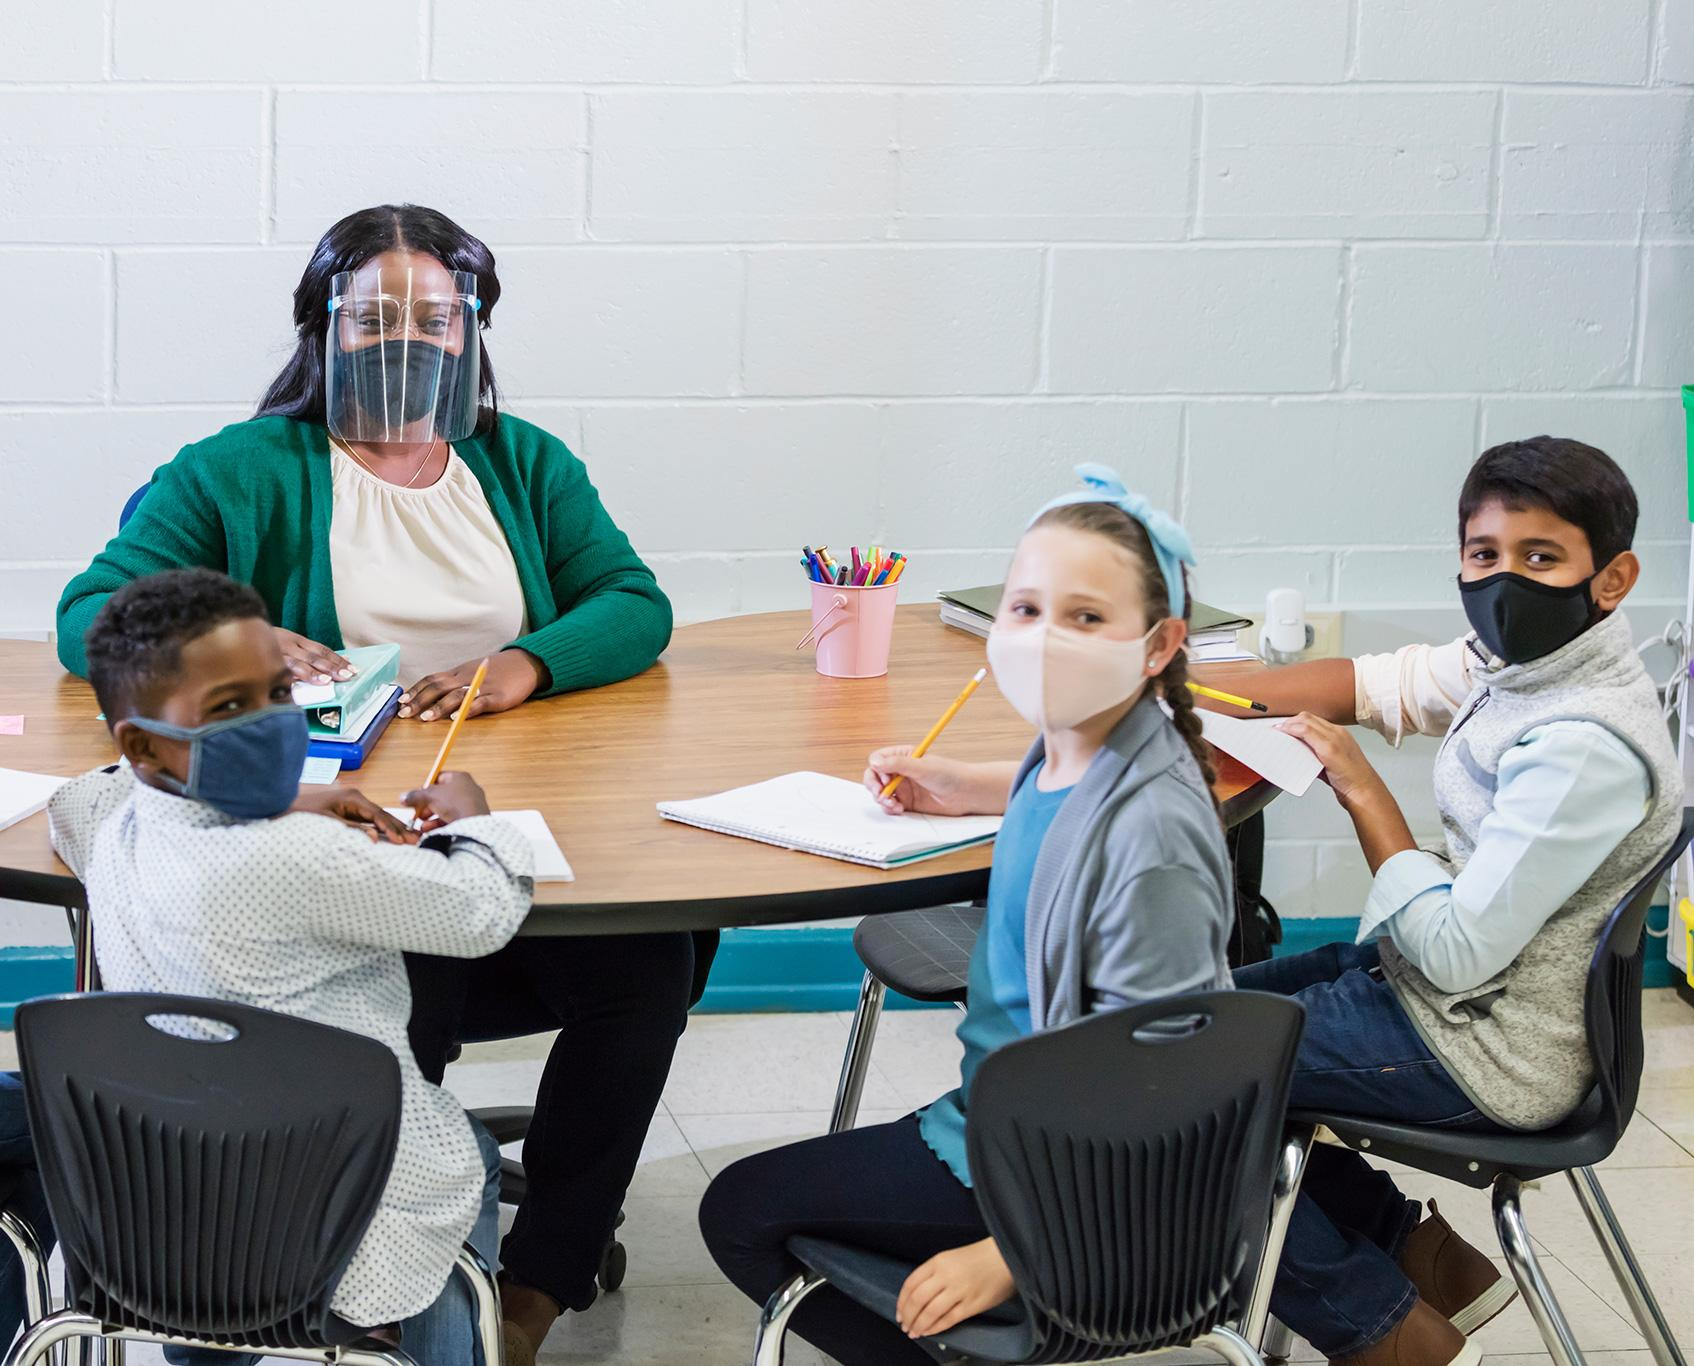 Classroom with masked students